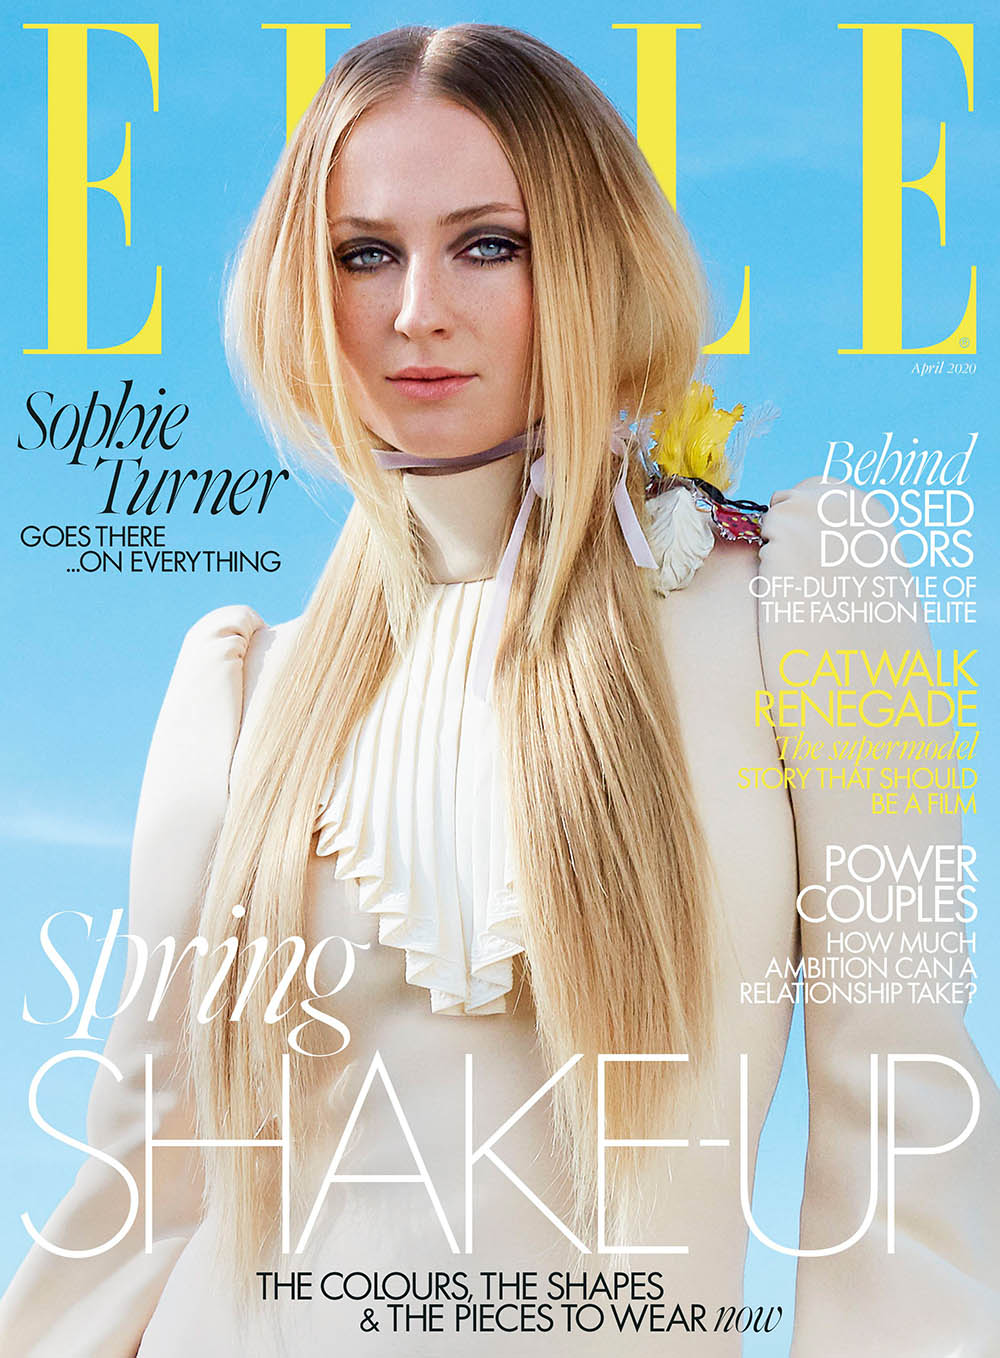 Sophie Turner covers Elle US and Elle UK April 2020 by Arthur Elgort